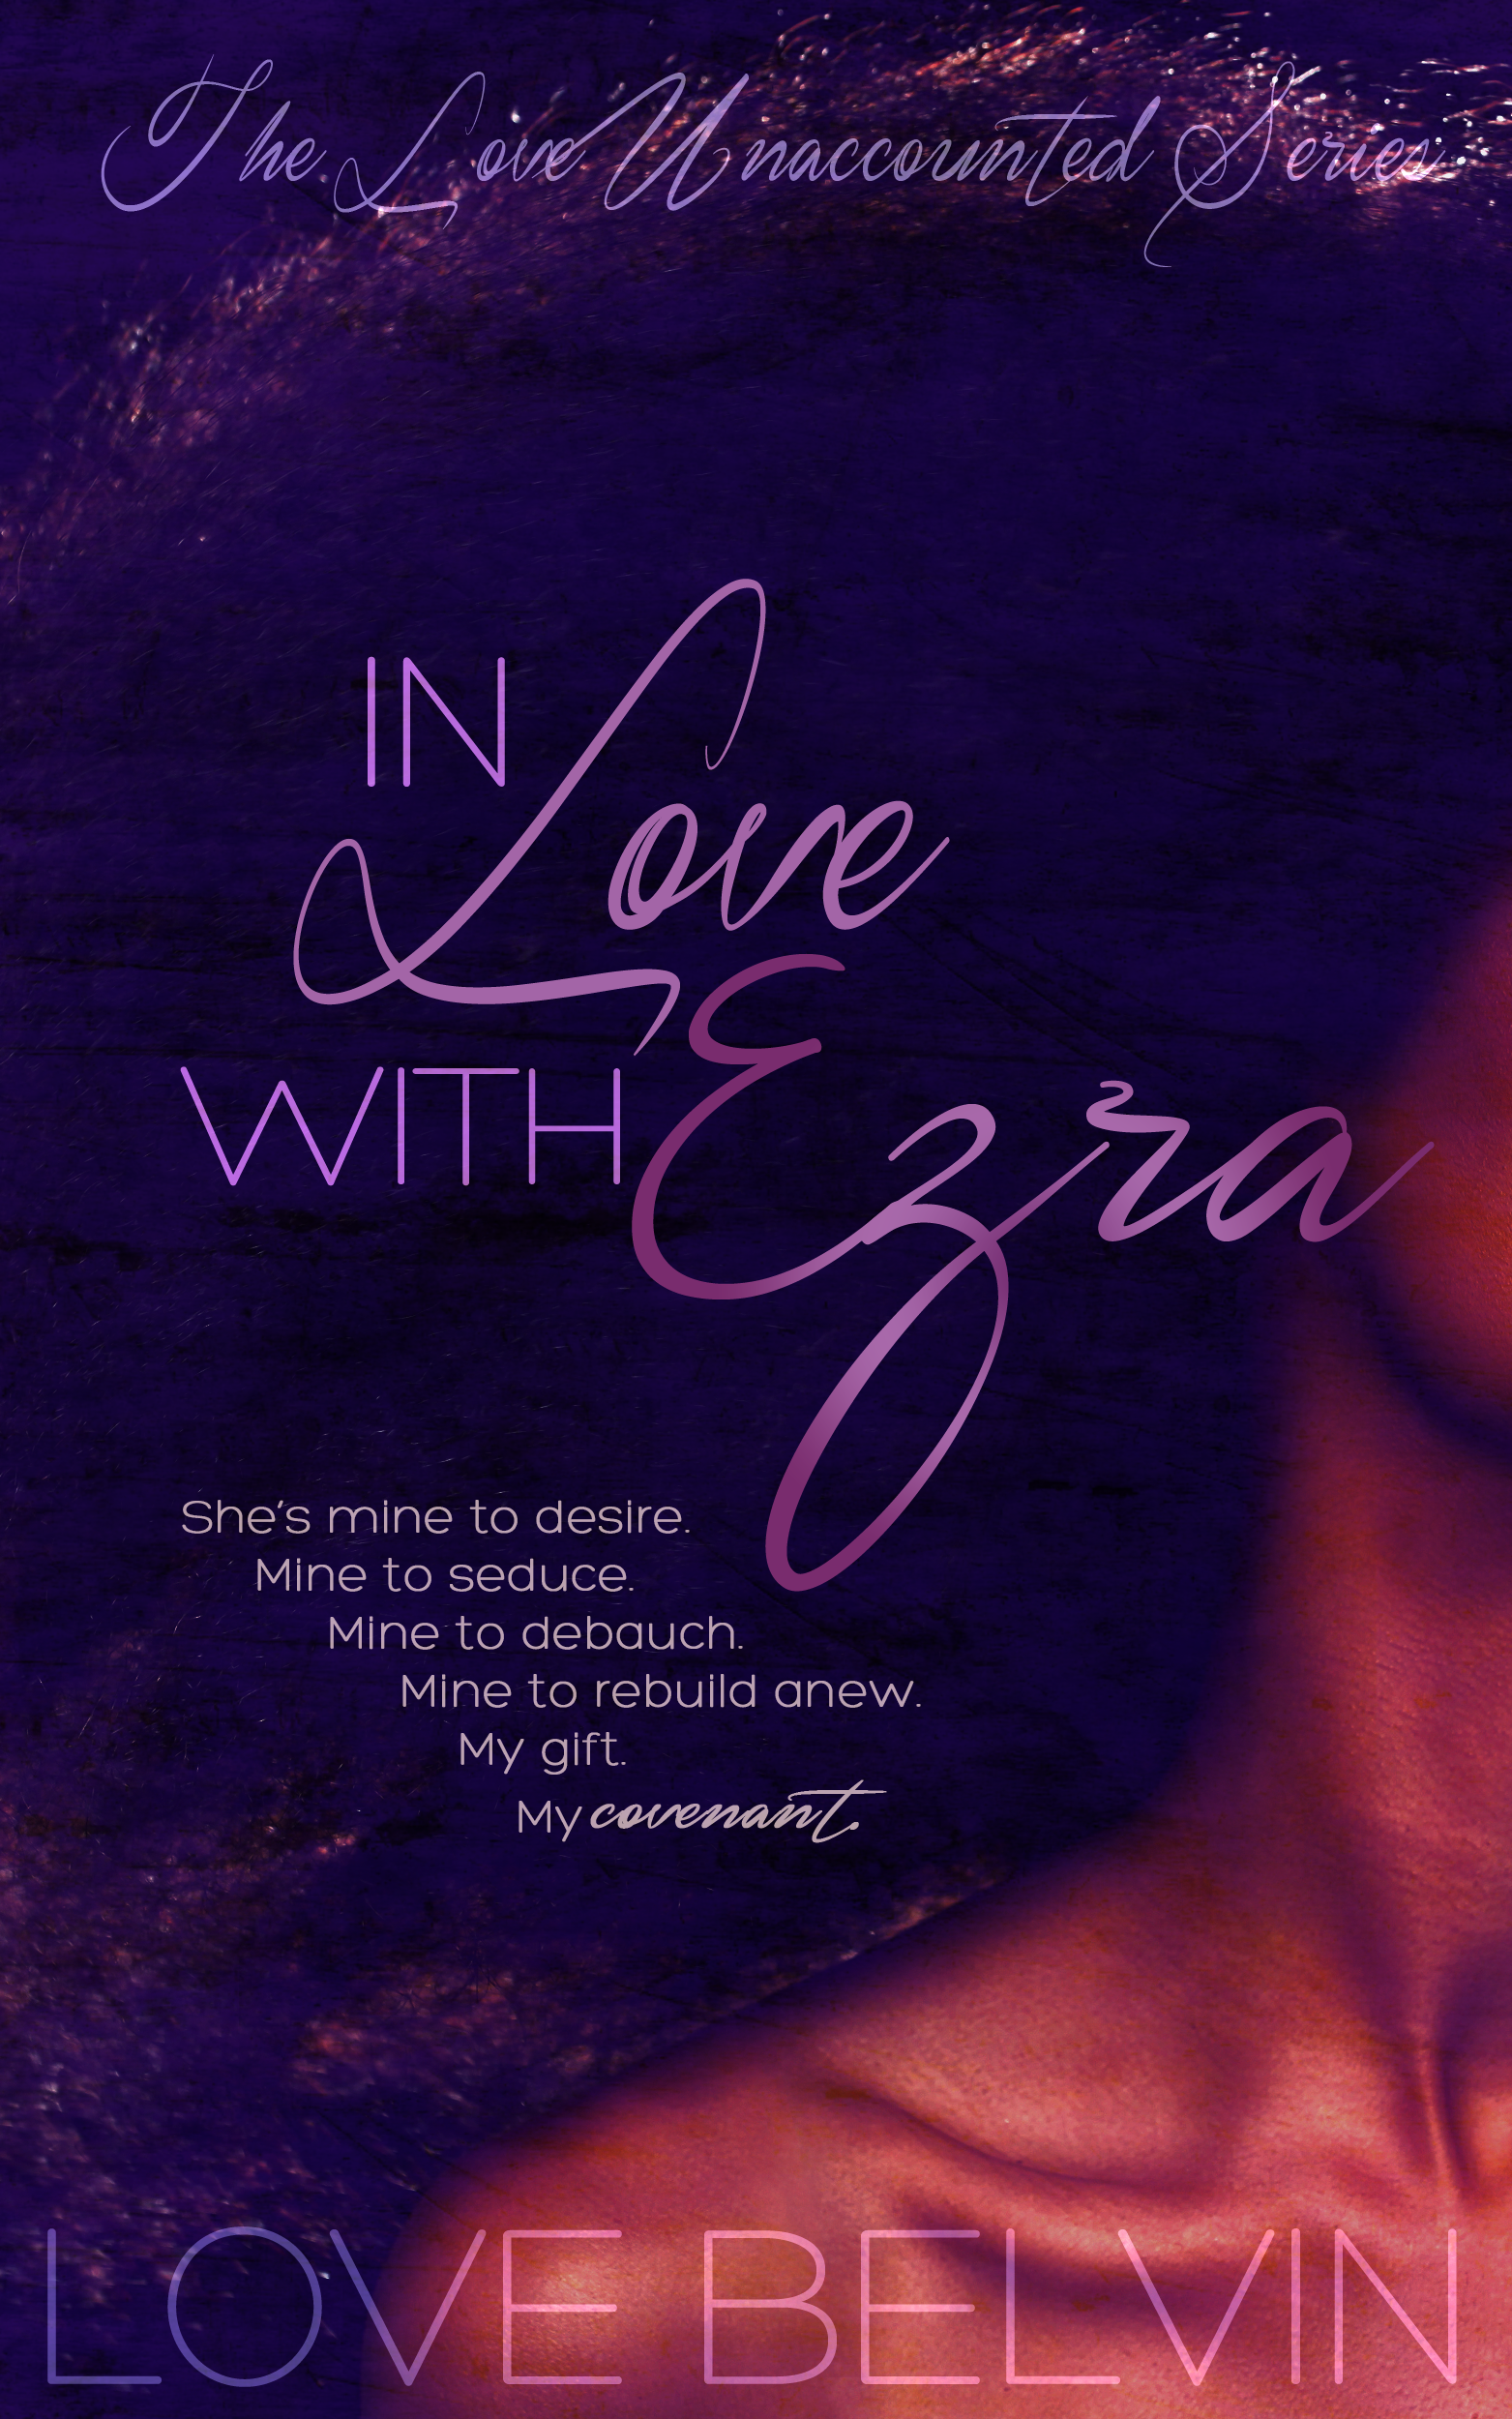 In Love with Ezra (book 2 of L.U.)